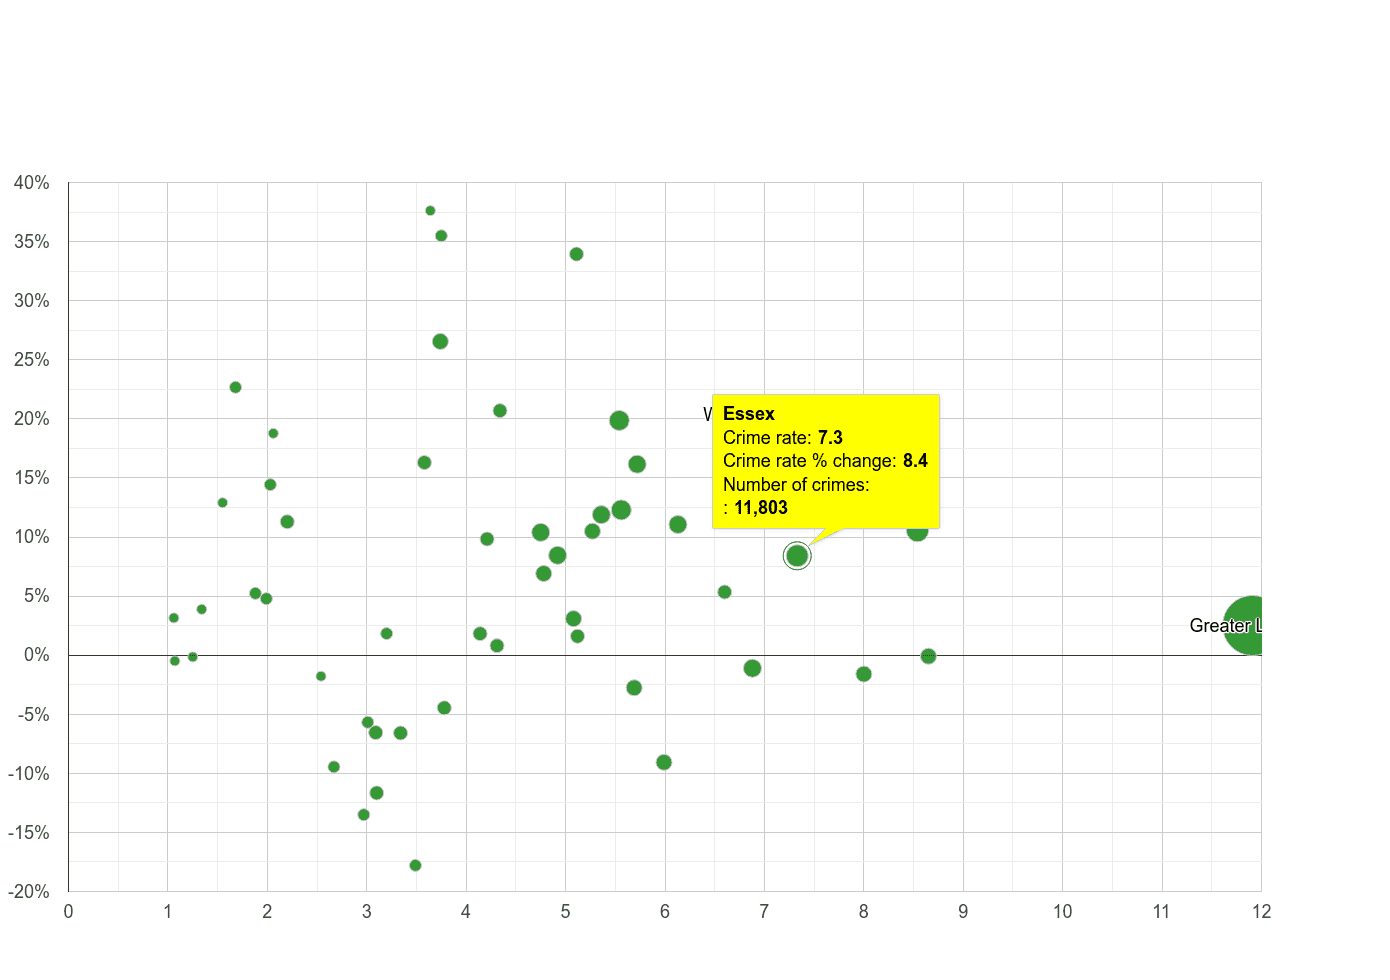 Essex vehicle crime rate compared to other counties